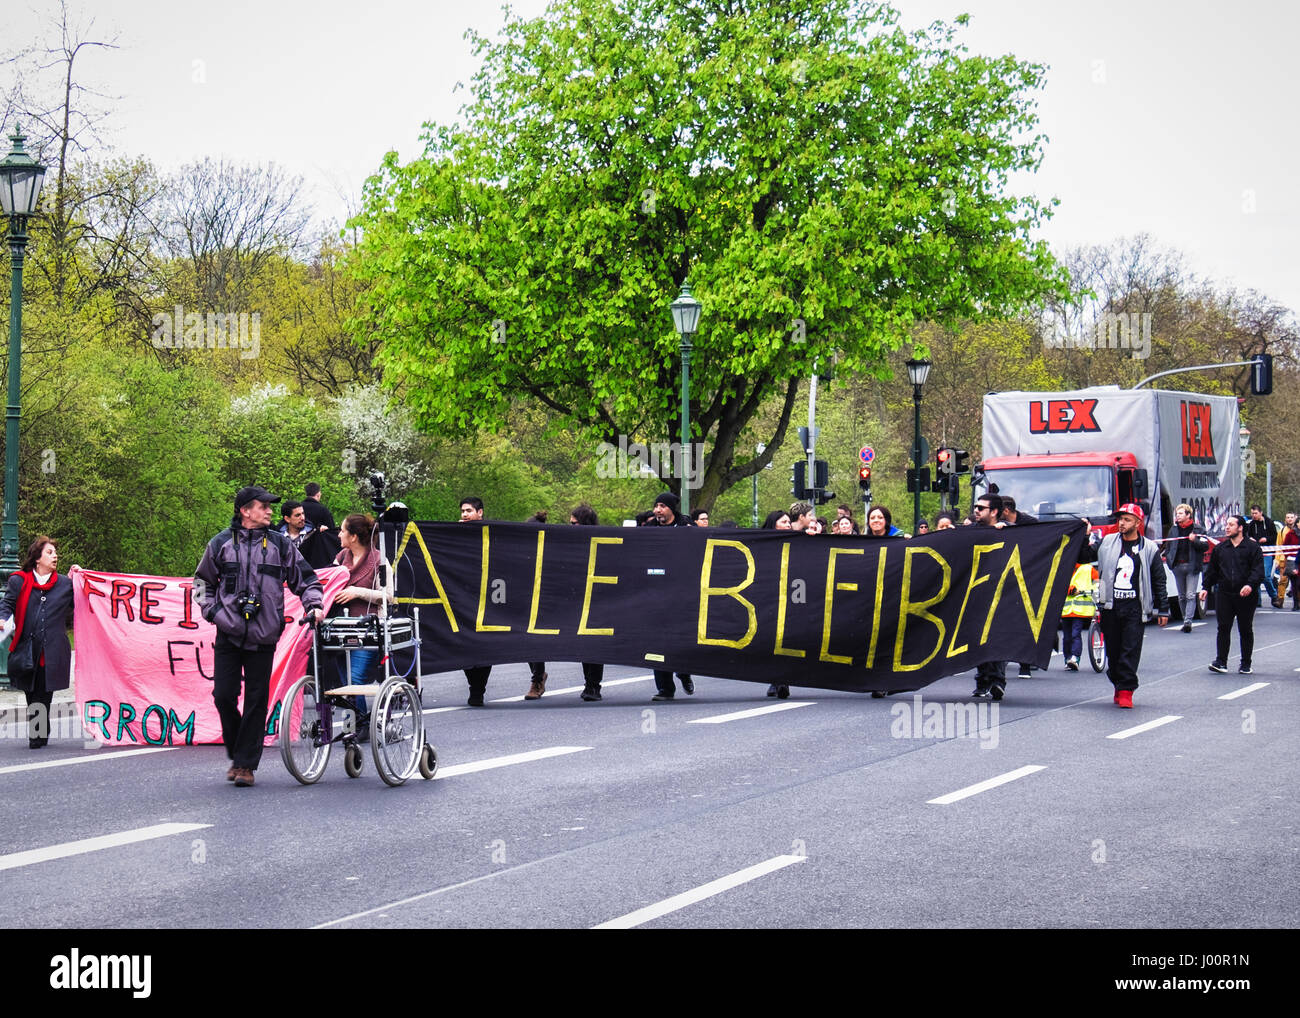 Germany, Berlin, Mitte. 8th April 2017. International Roma day rally in Berlin. People gathered at the Paul-Löbe - Stock Image